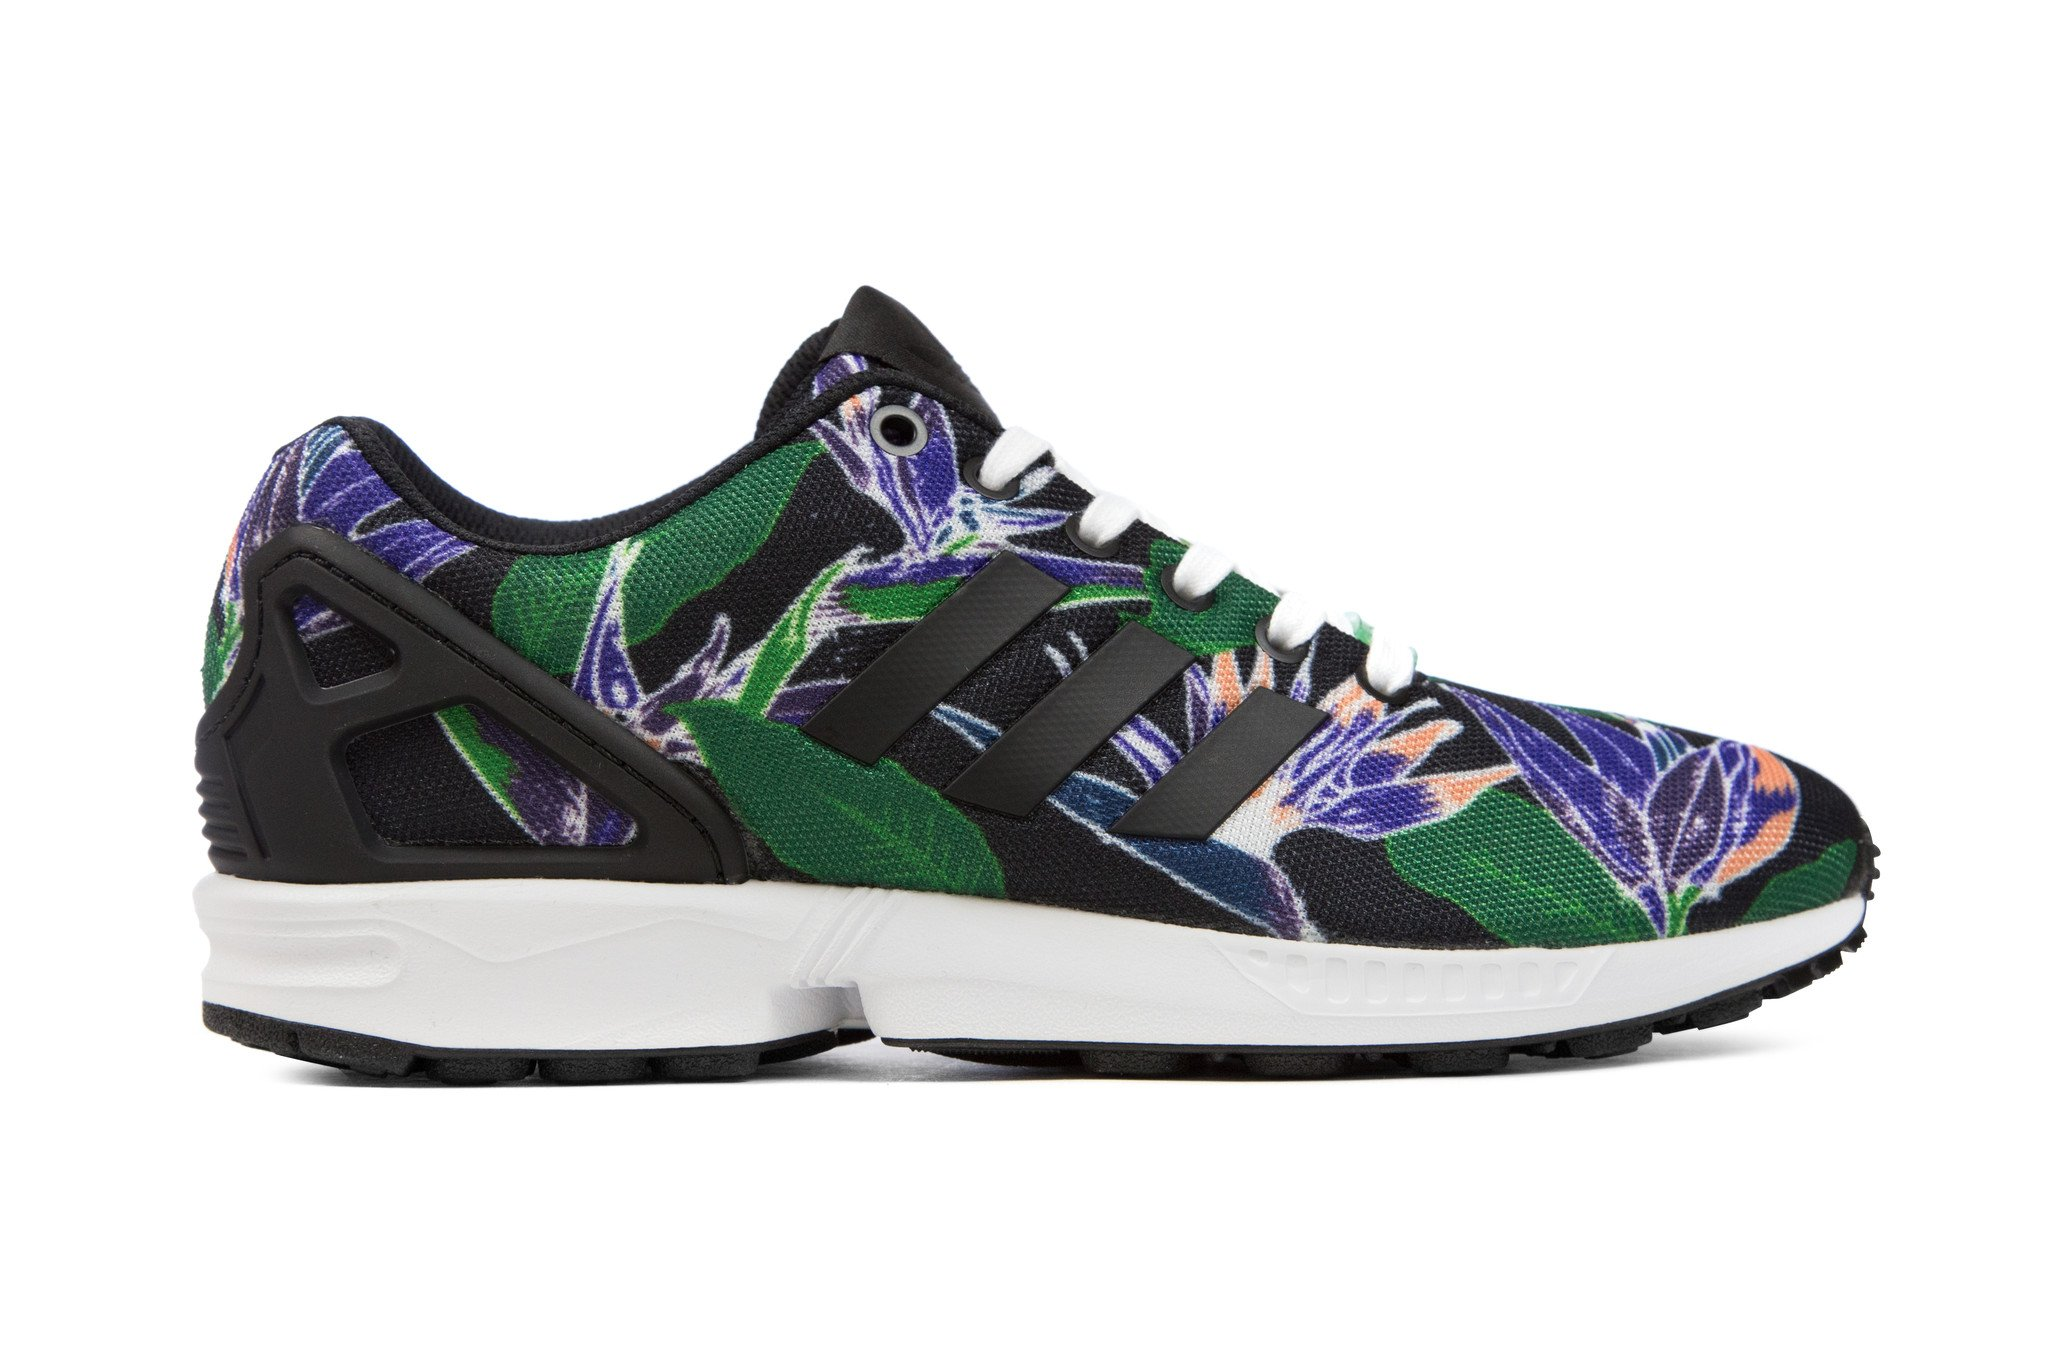 Zx Flux Floral | Ocean Zx Flux | Adidas Torsion Zx Flux